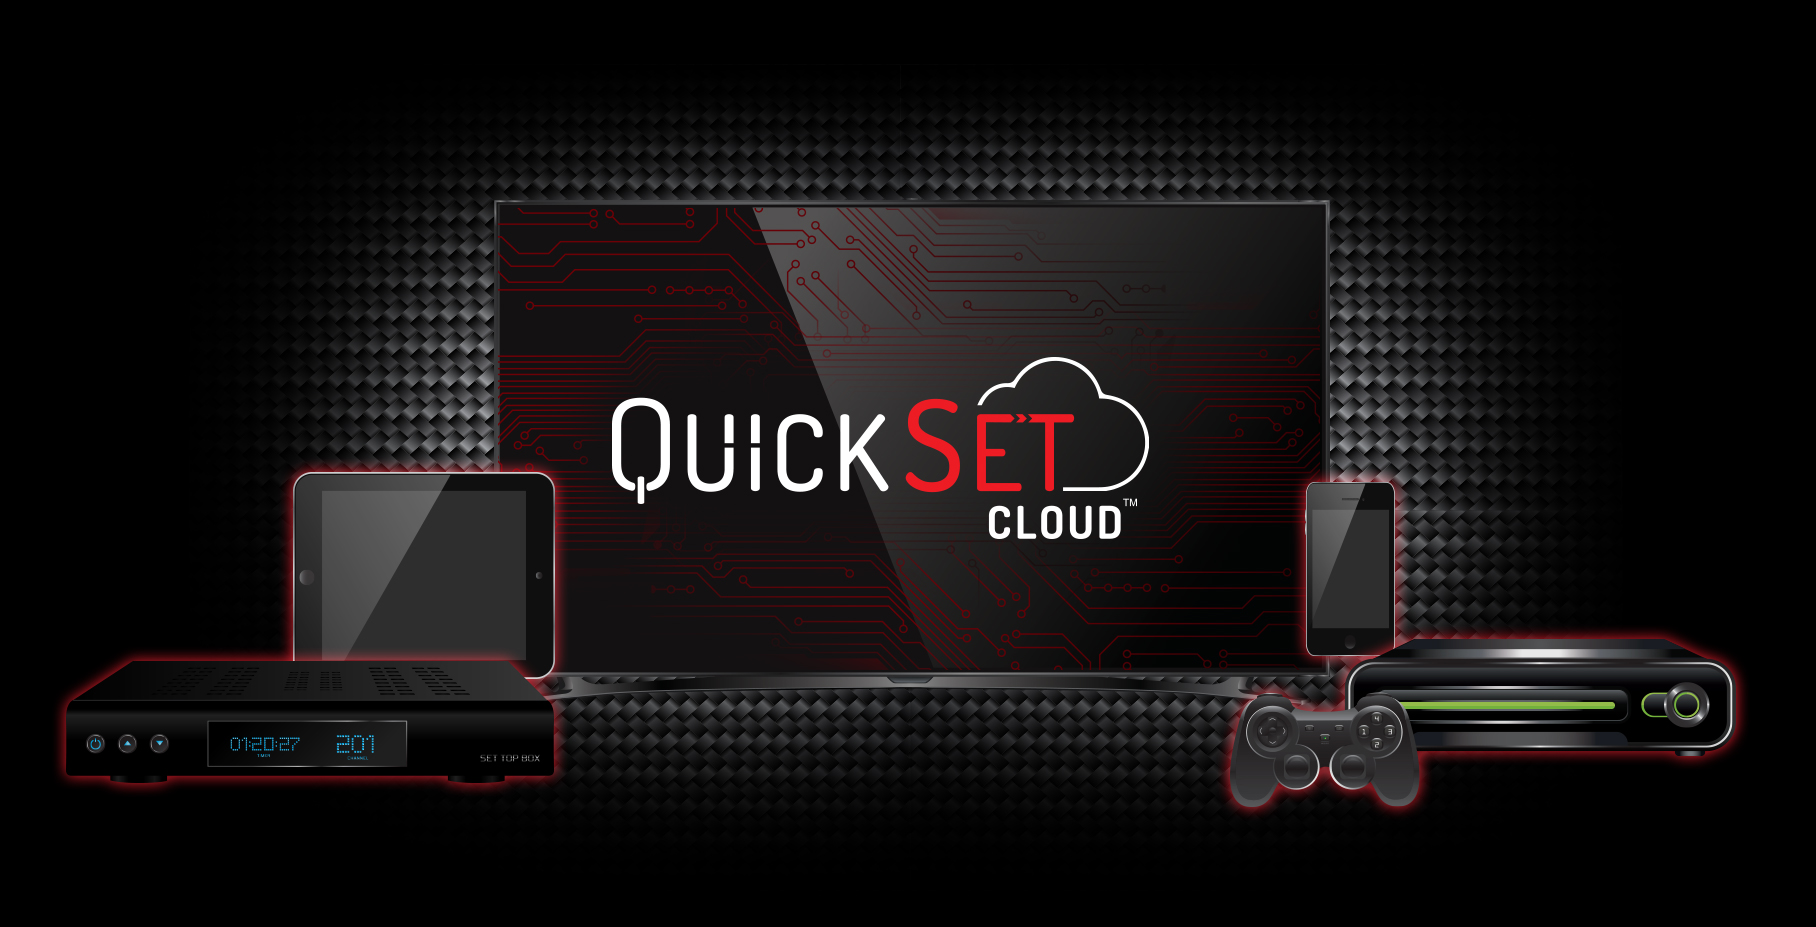 QuickSet Cloud Powering Devices